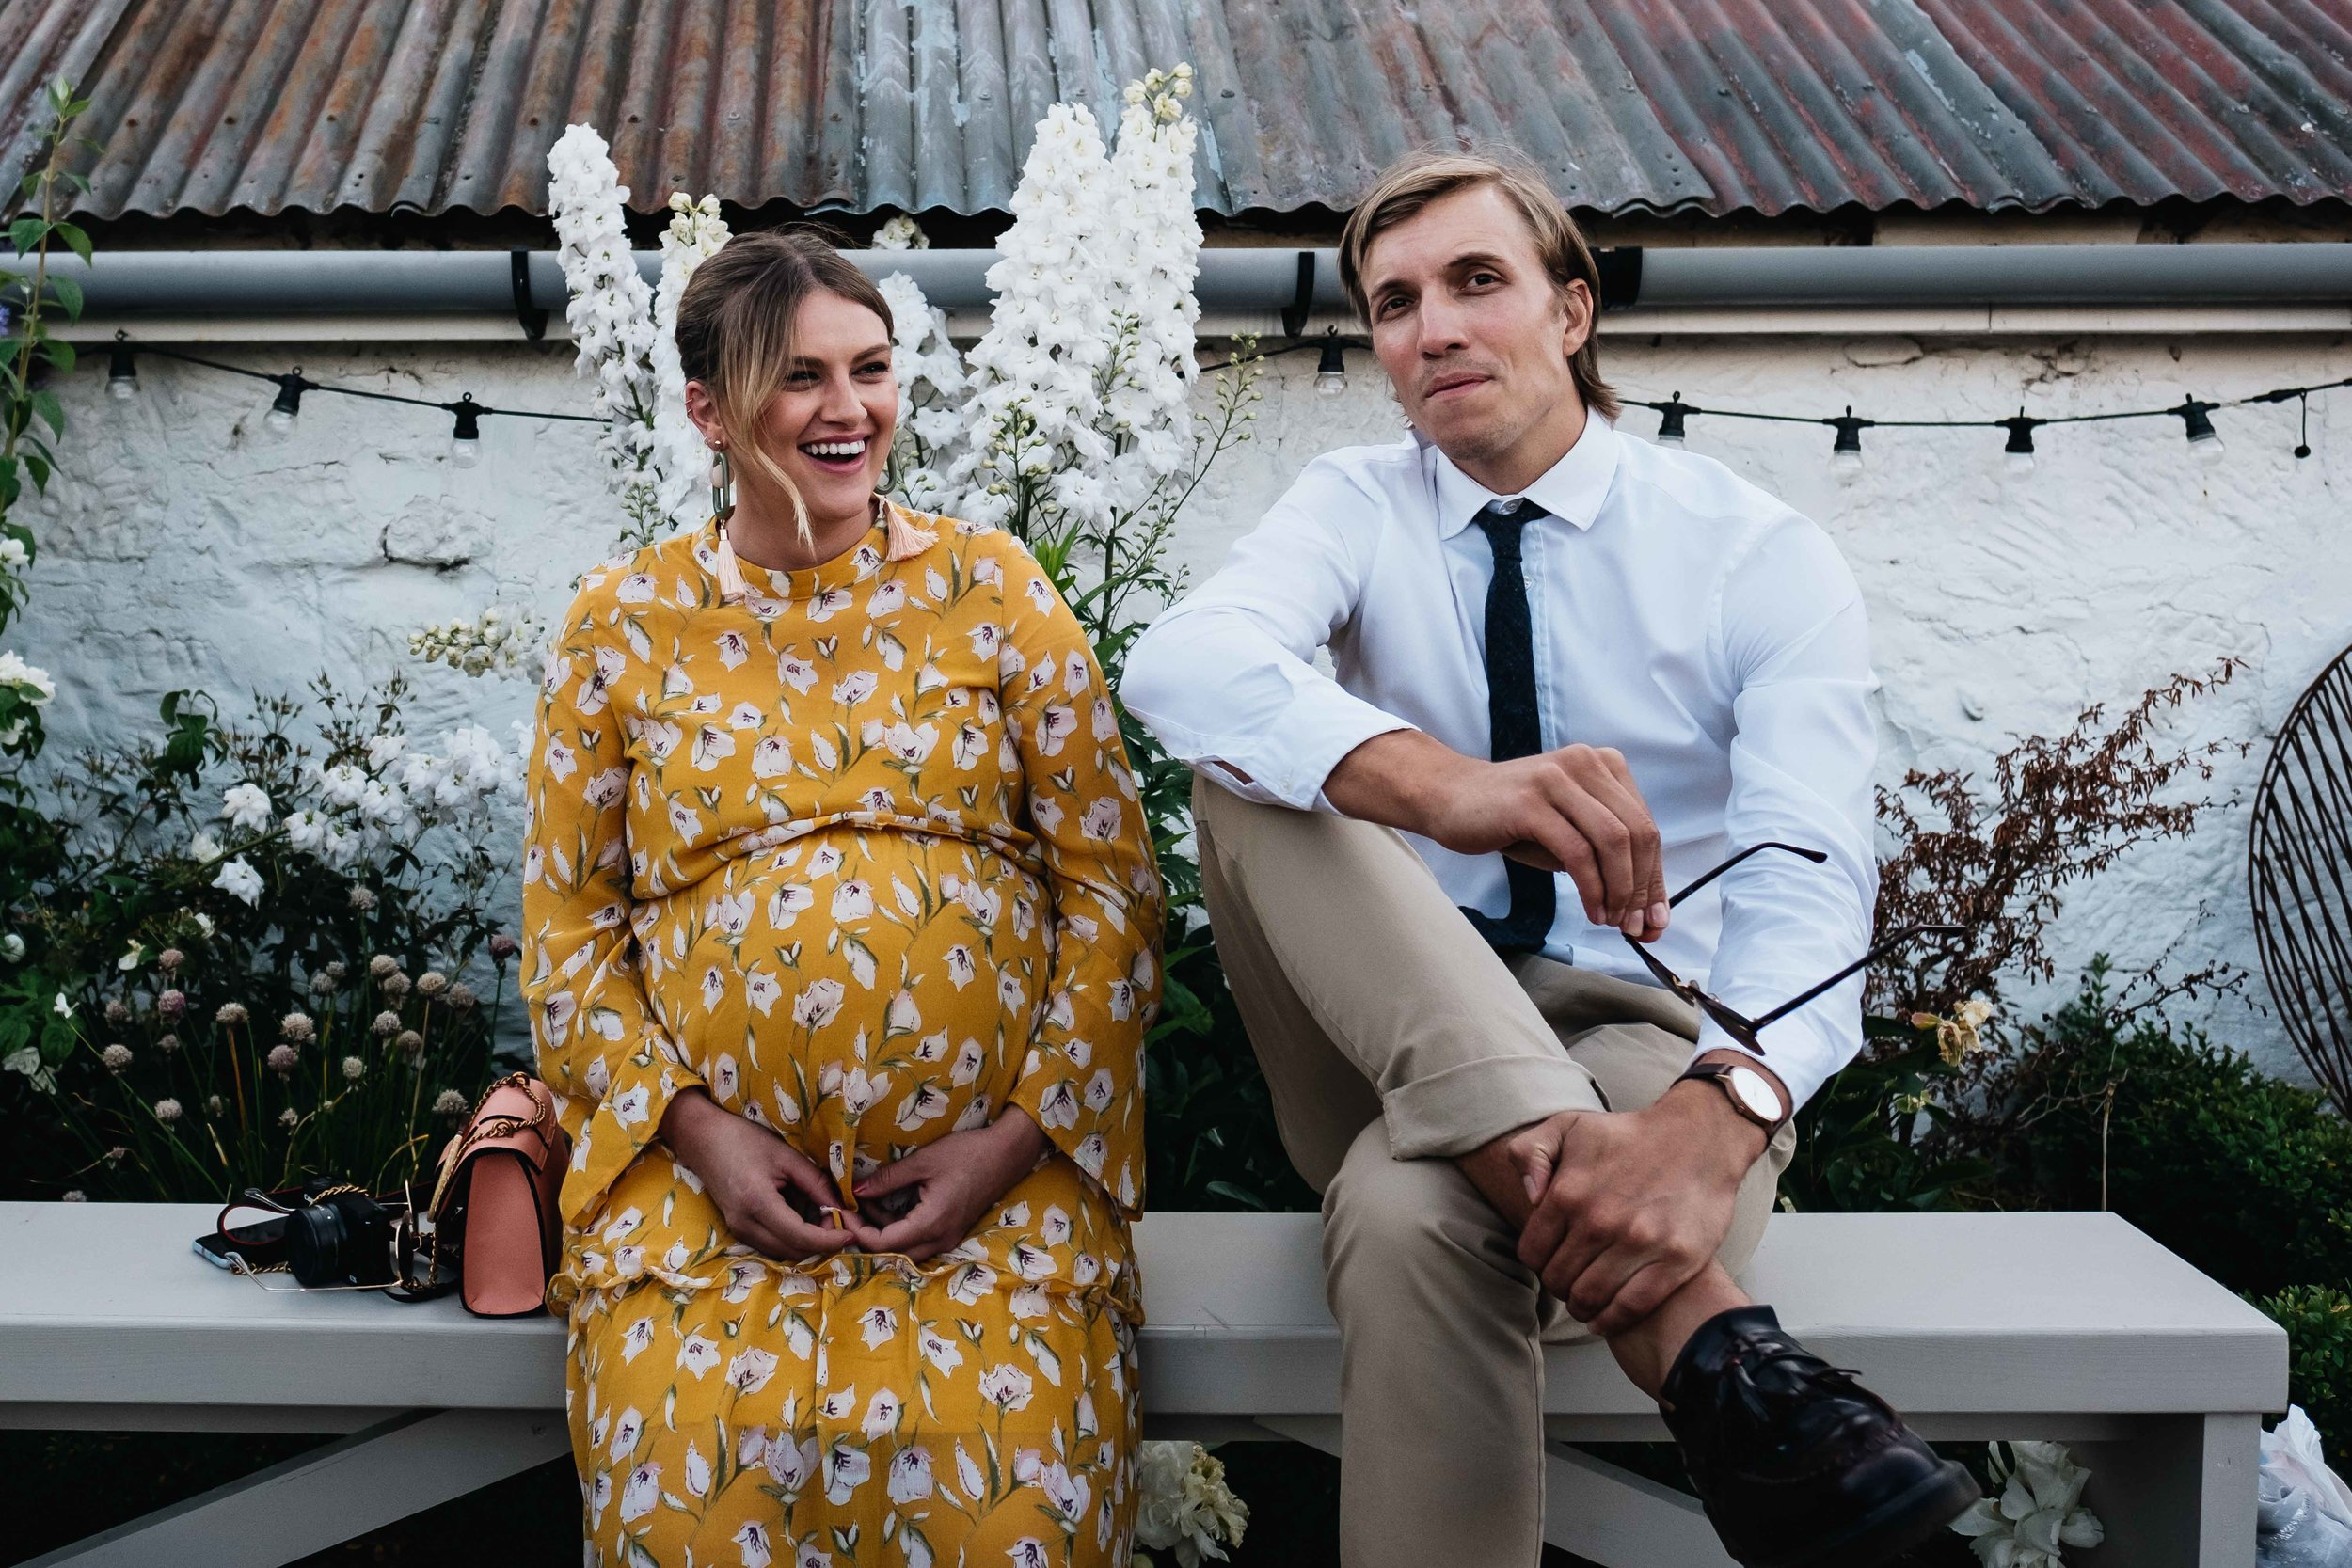 pregnant guest and partner sitting on a bench